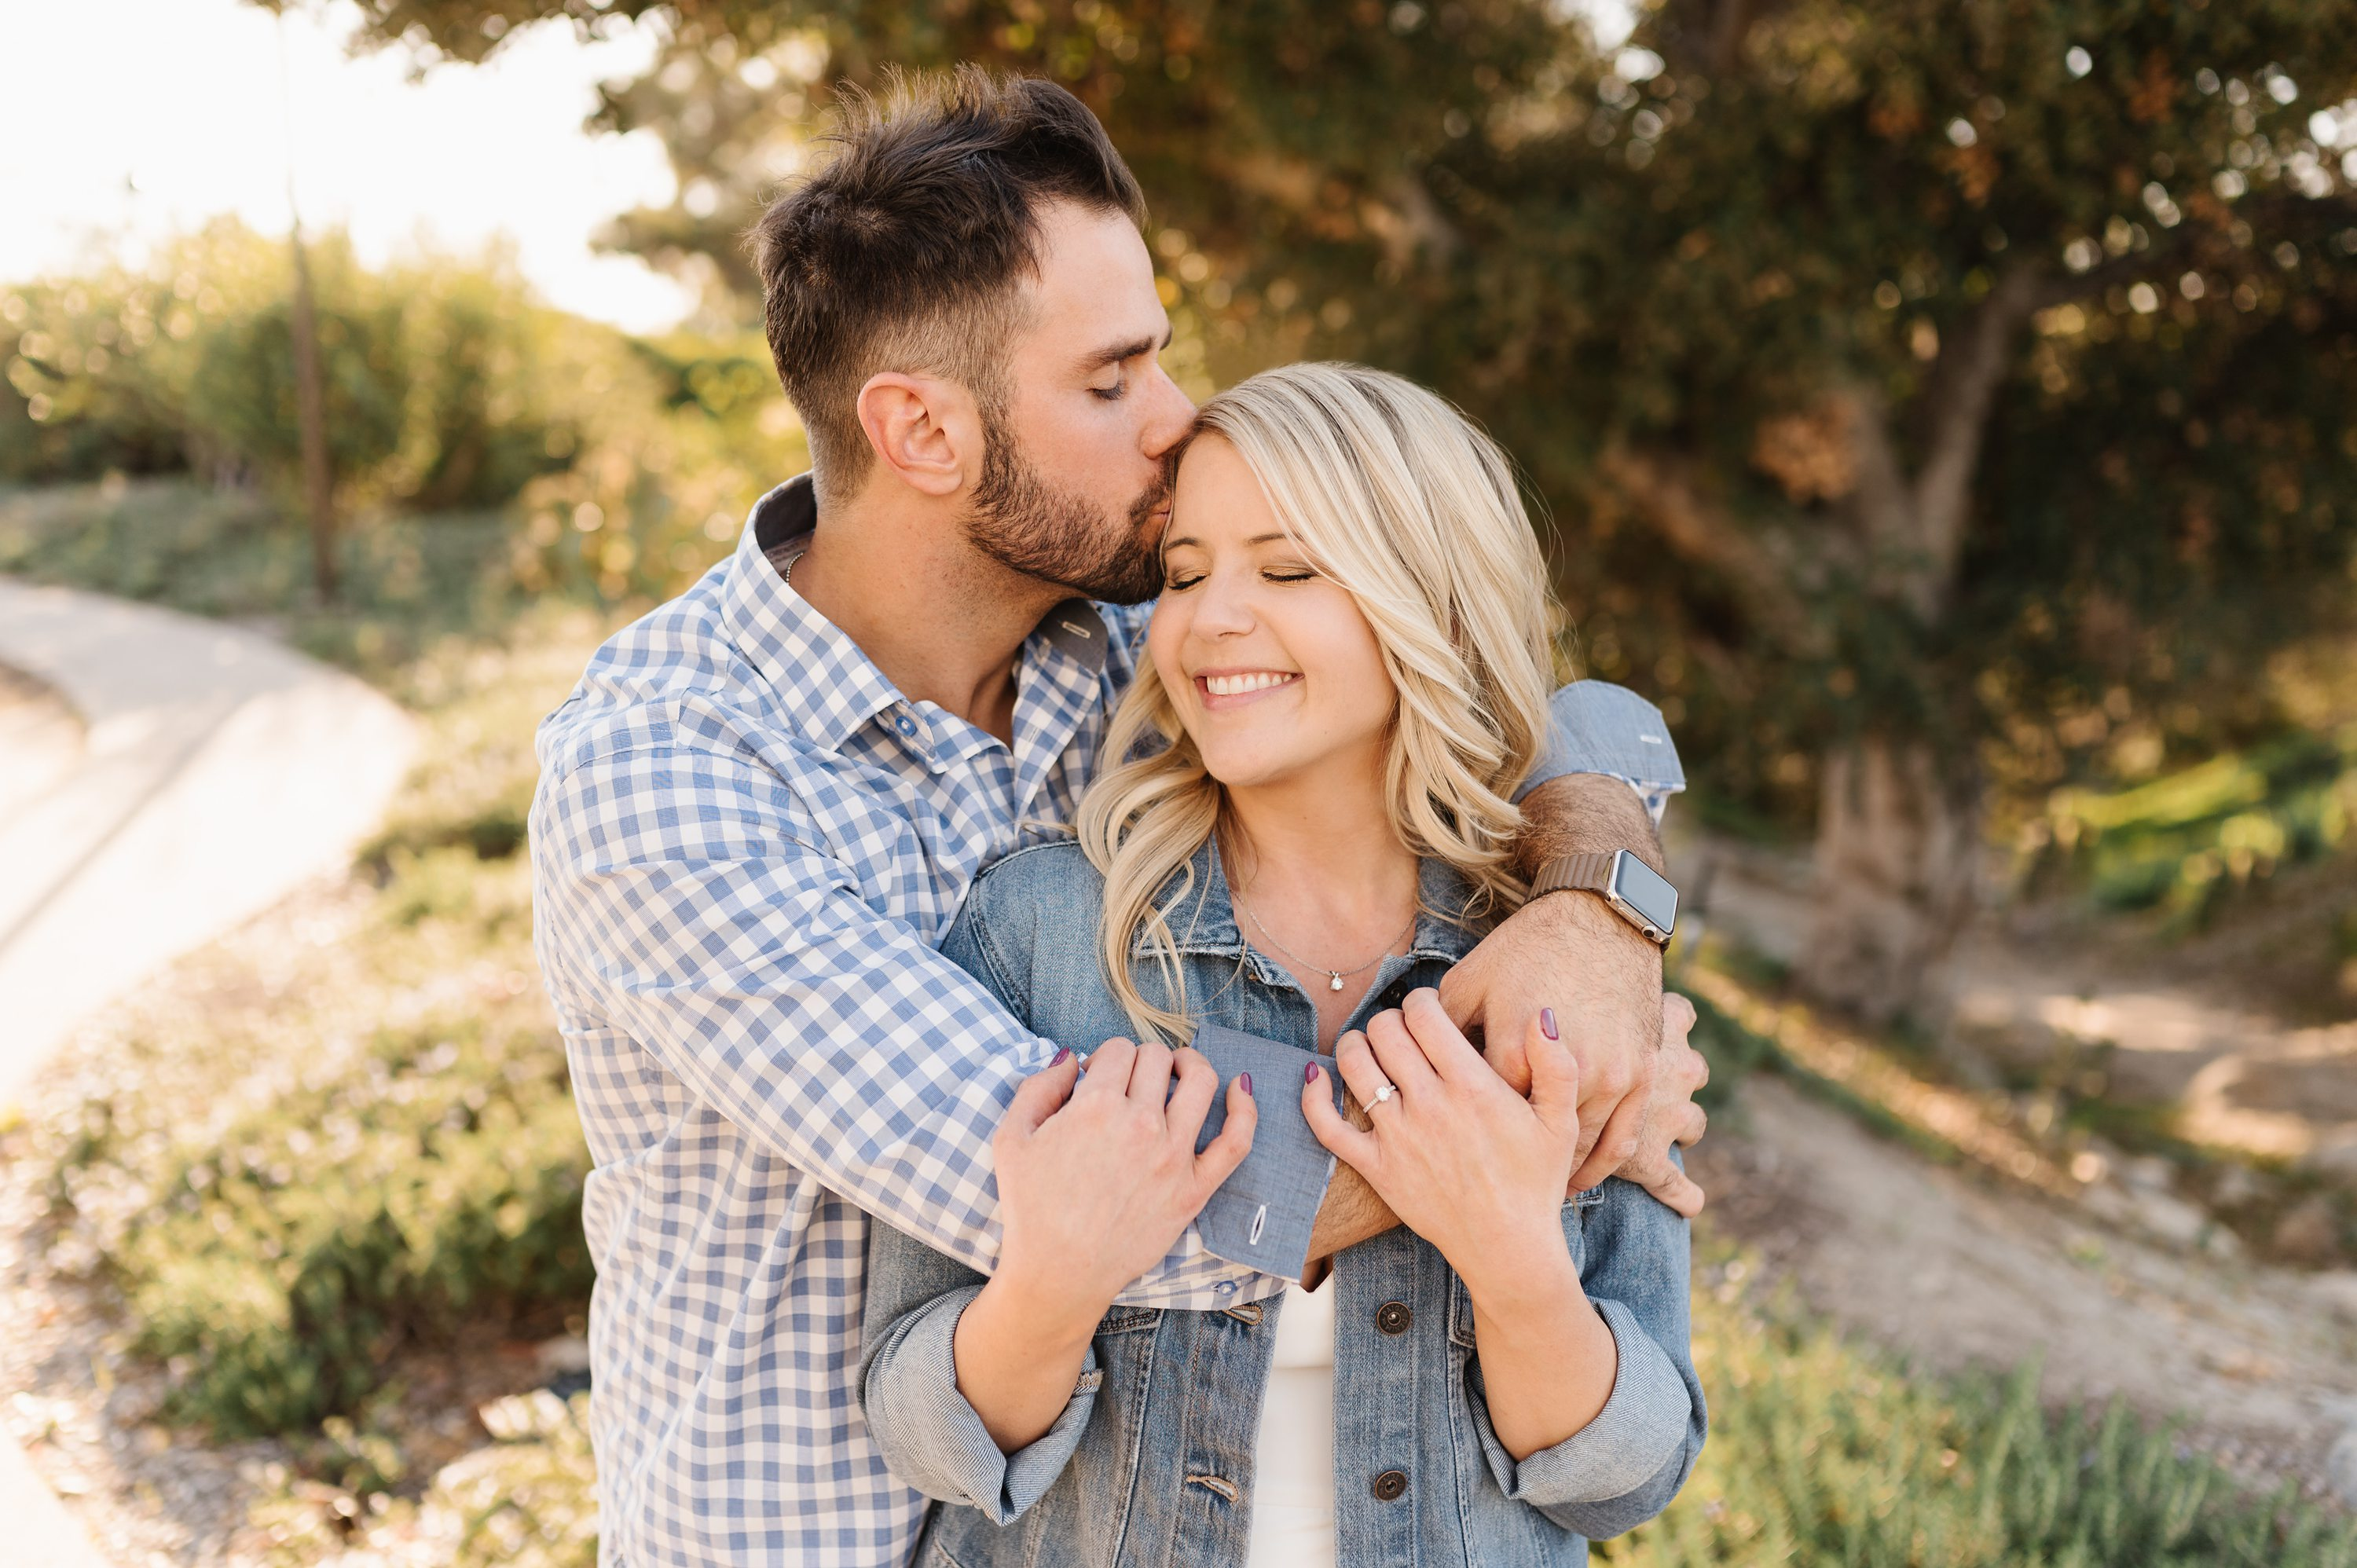 orange county engagement photographer,ladera ranch engagement photographer